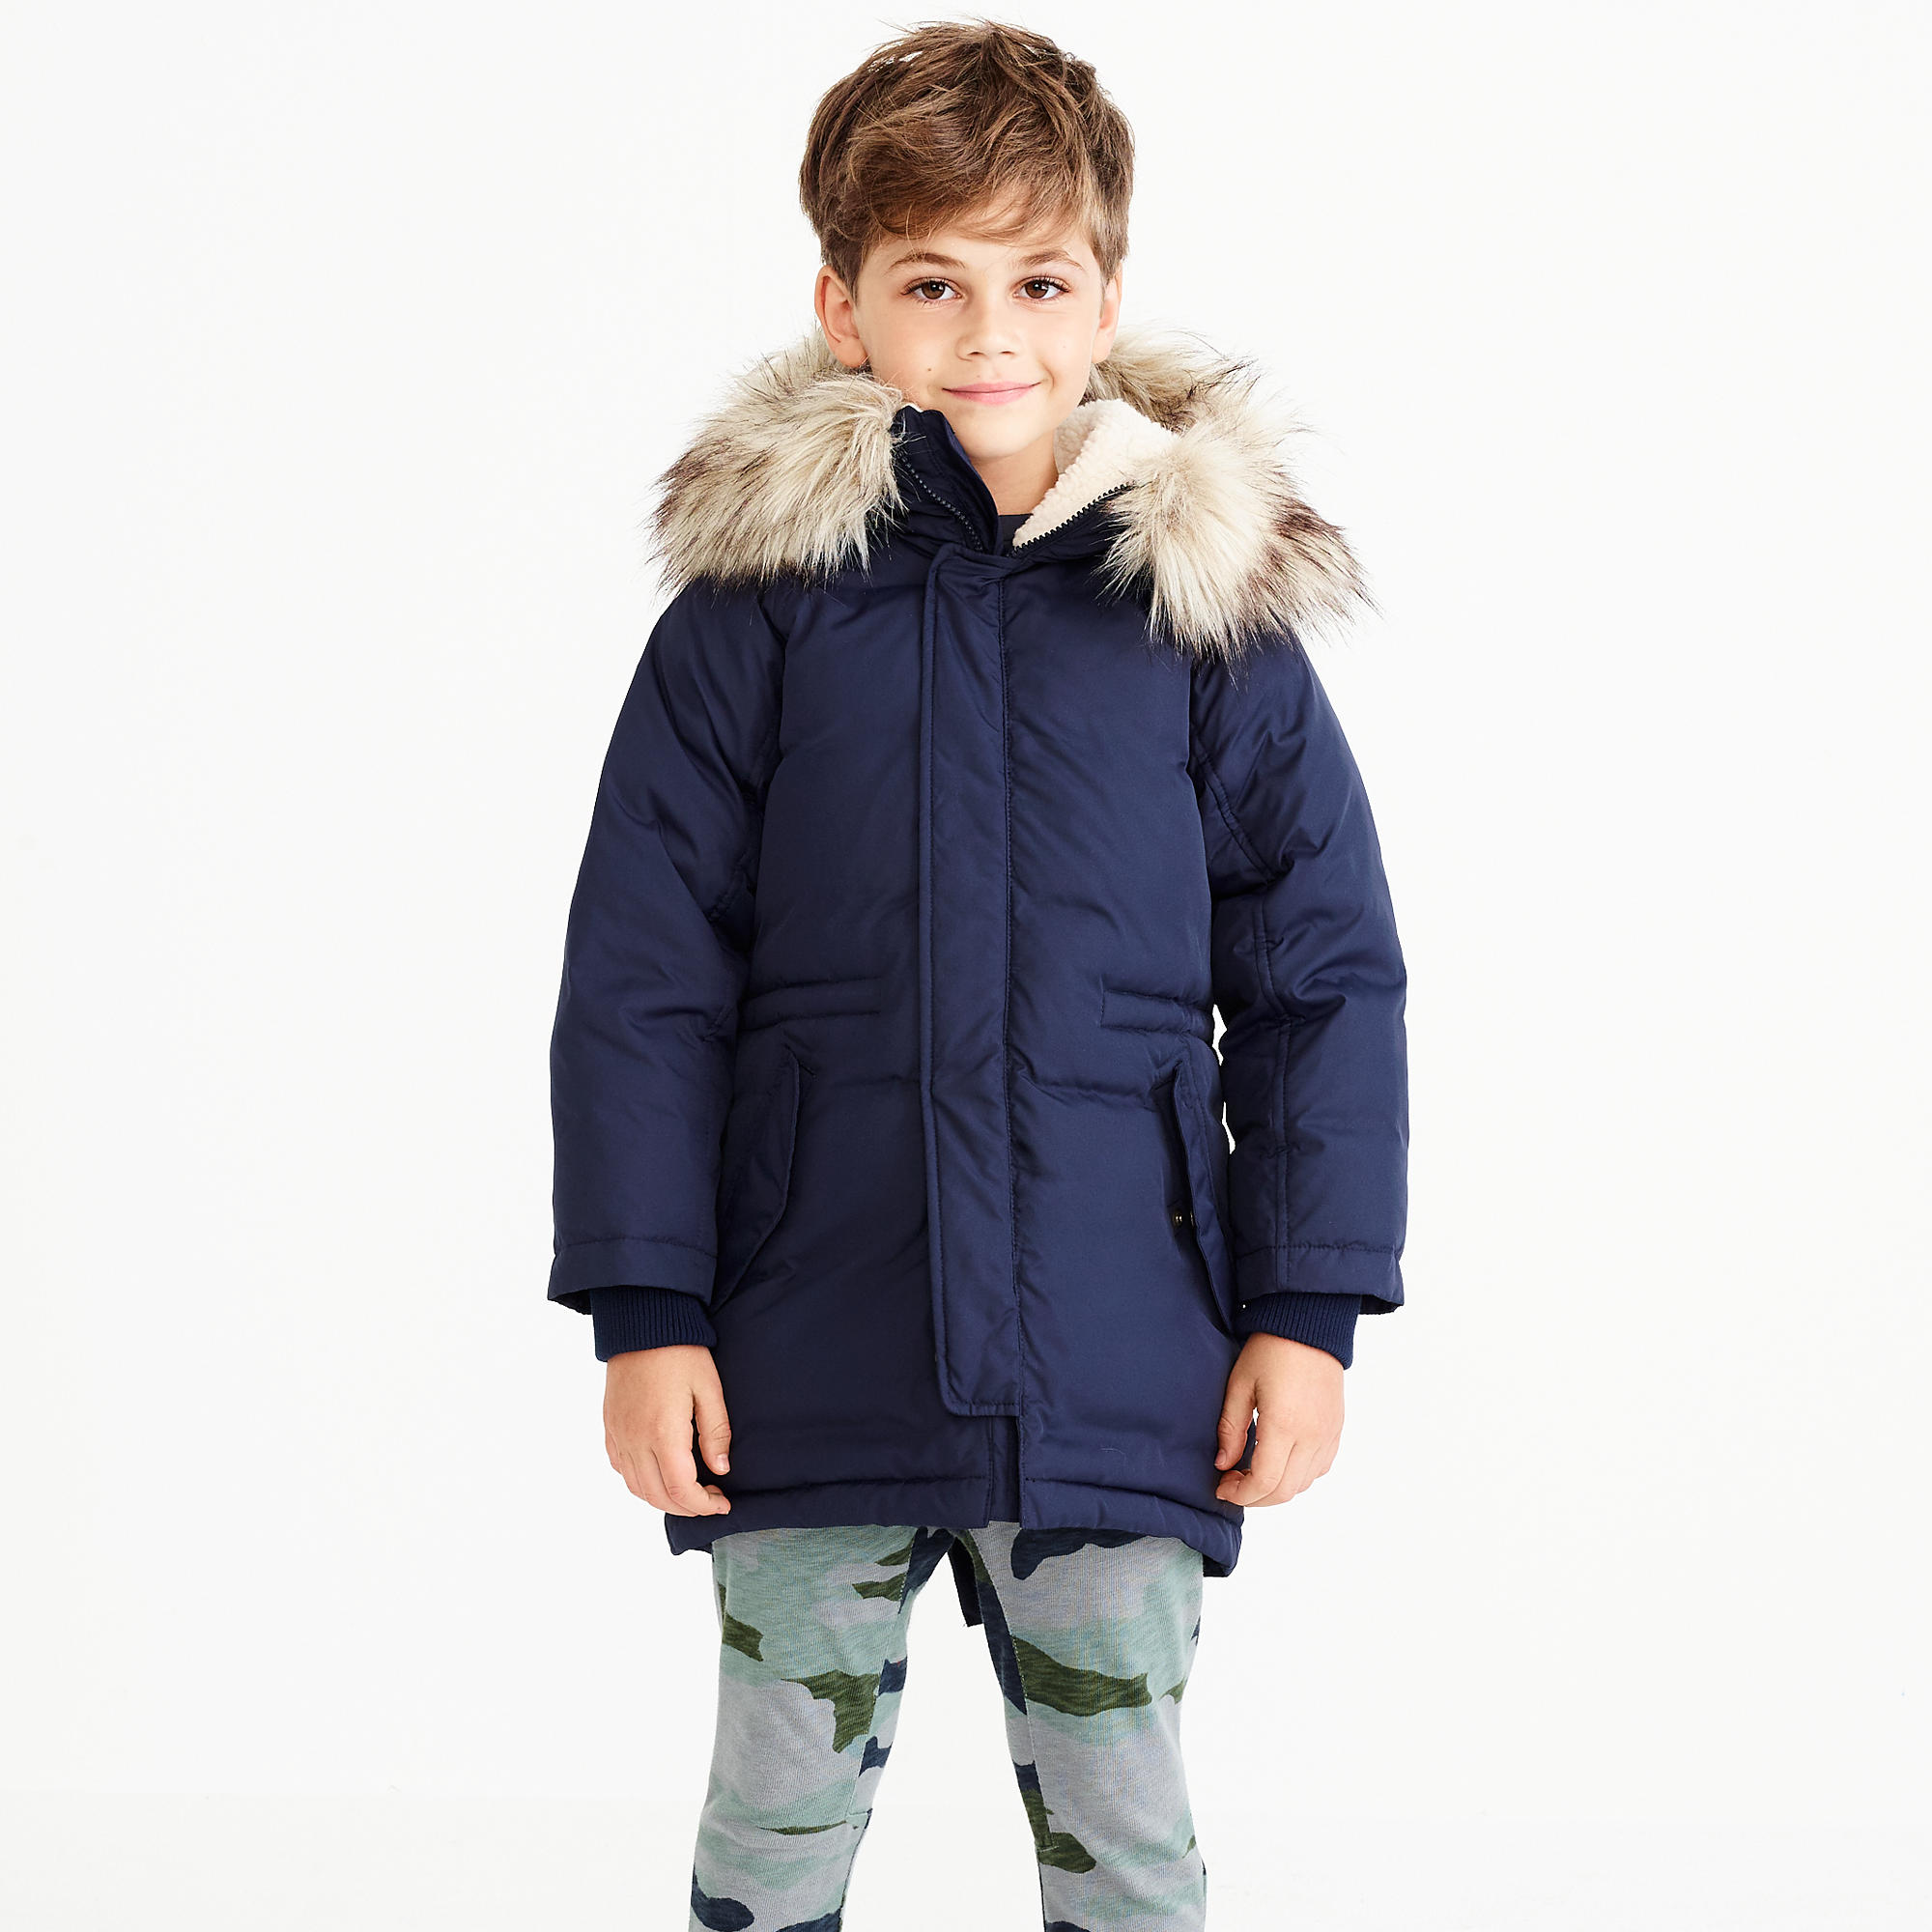 Boys' fishtail parka : FactoryBoys Coats & Jackets | Factory